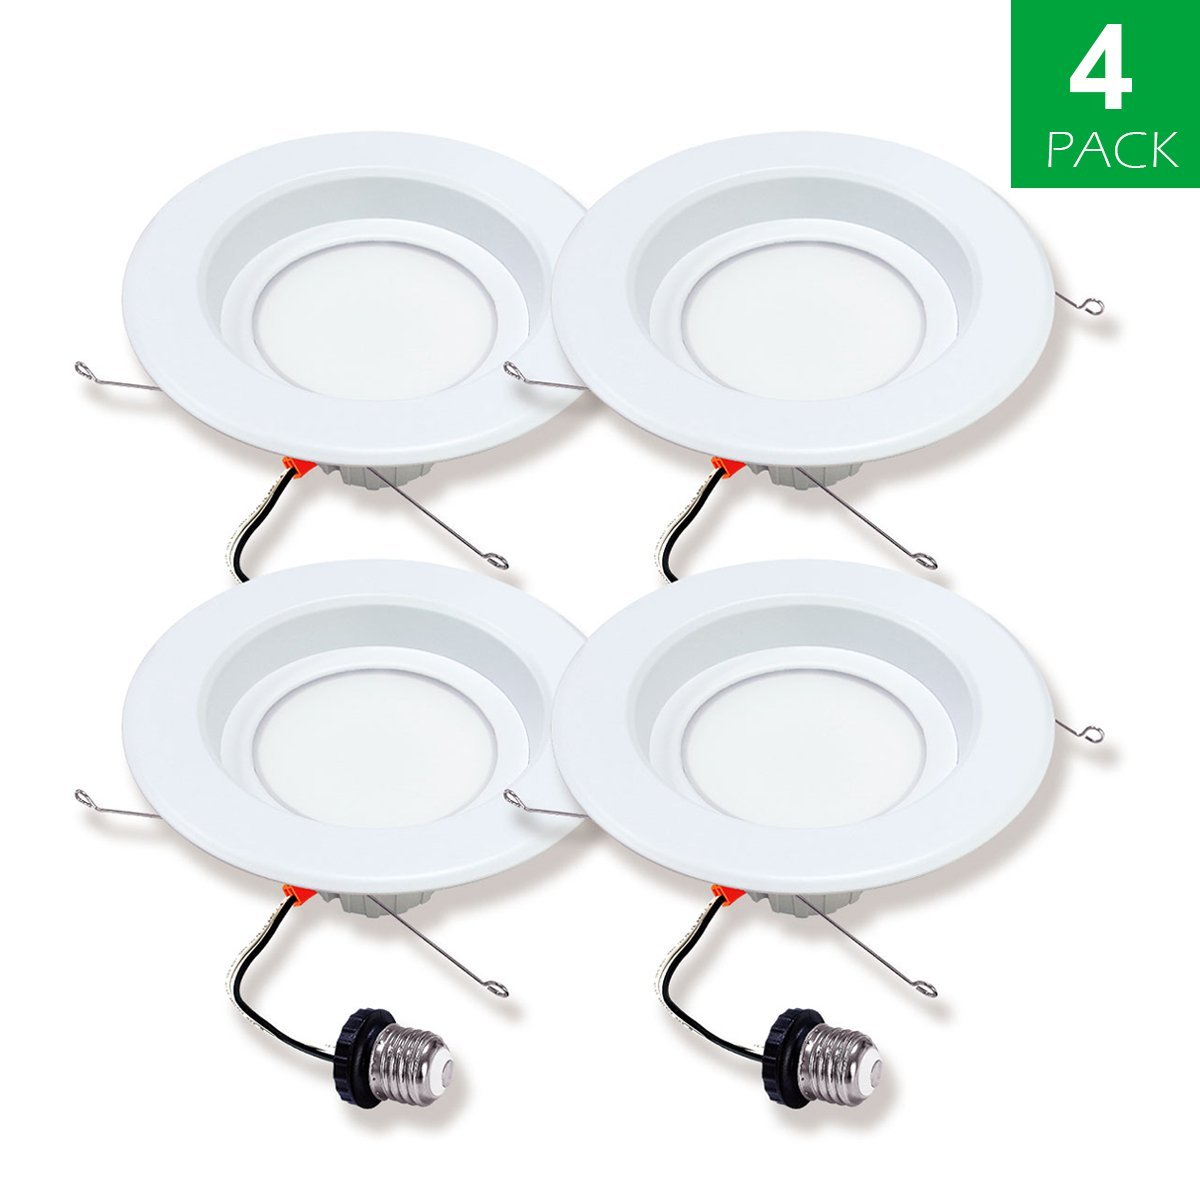 Dimming White Round Downlight 10 Watts 4 Inch 950 Lumens,Equel to 75 Watt indoor light Recessed Downlight 6000K Daylight Recessed ceiling lights,pack of 10units Indee Led Recessed Light